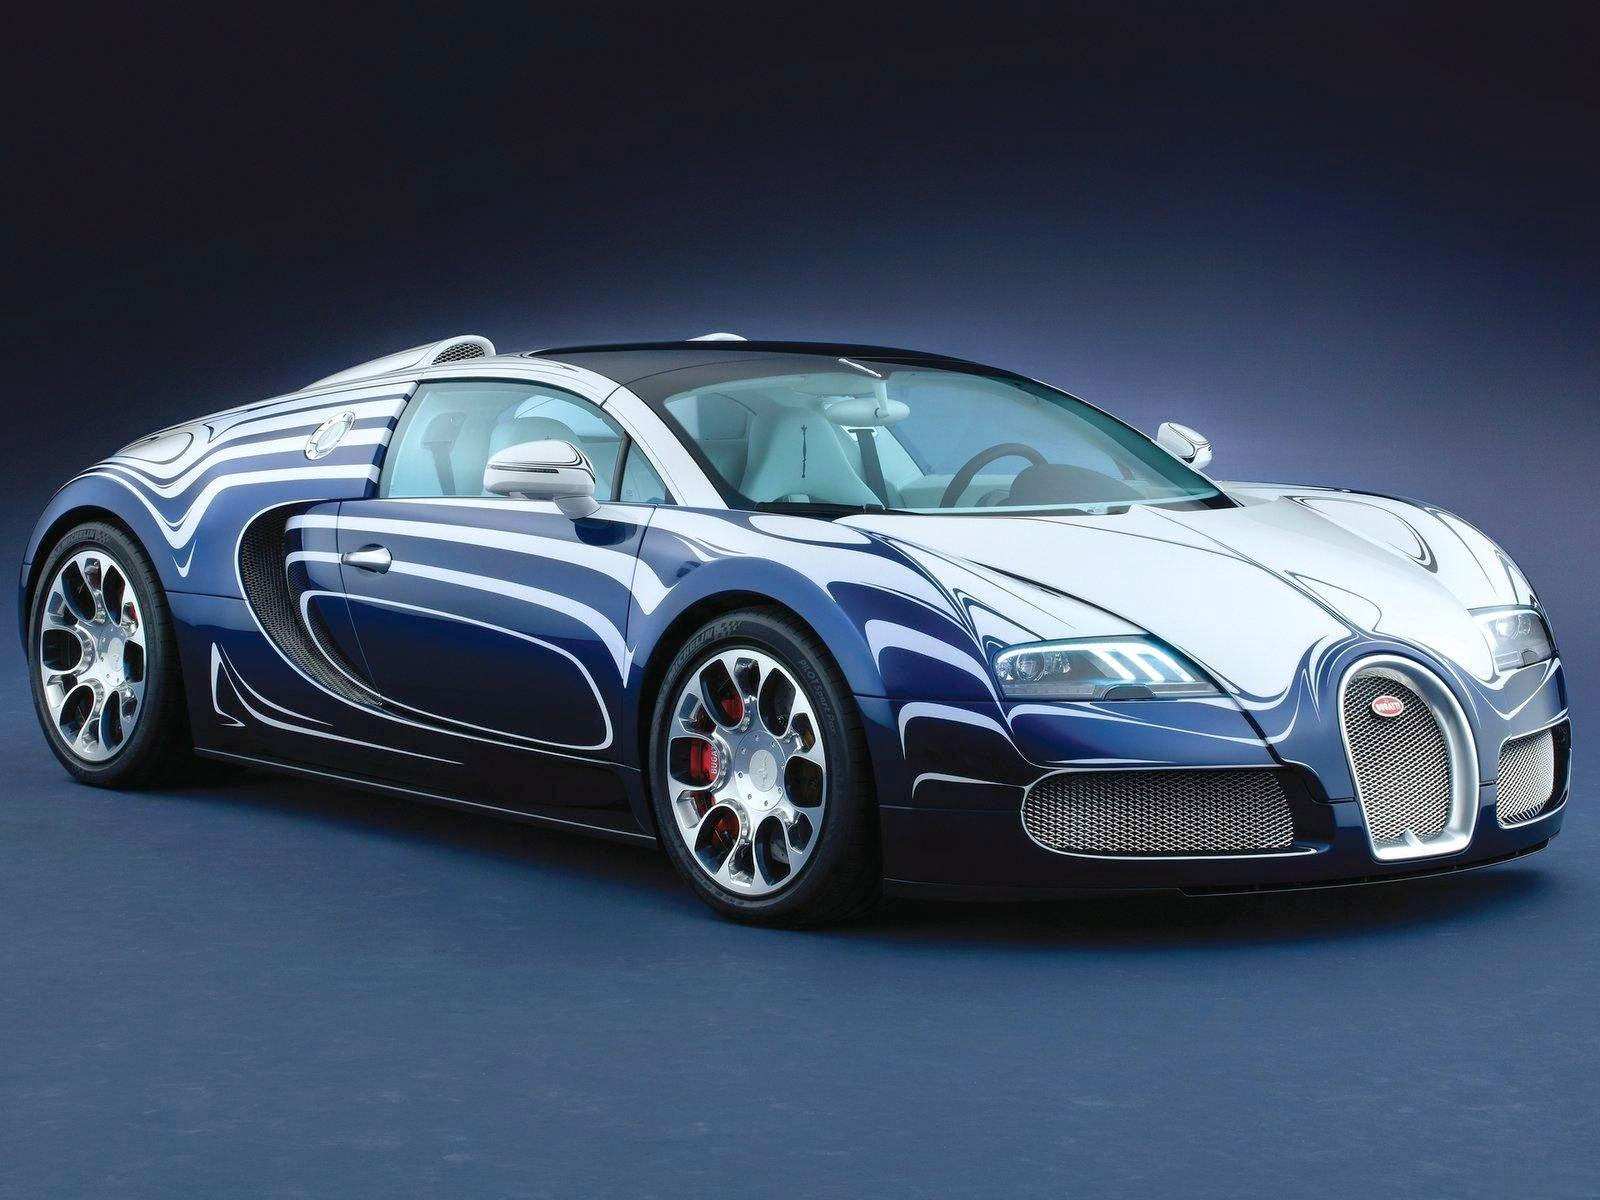 Bugatti Veyron Wallpapers HD WALLPAPERS 1600x1200